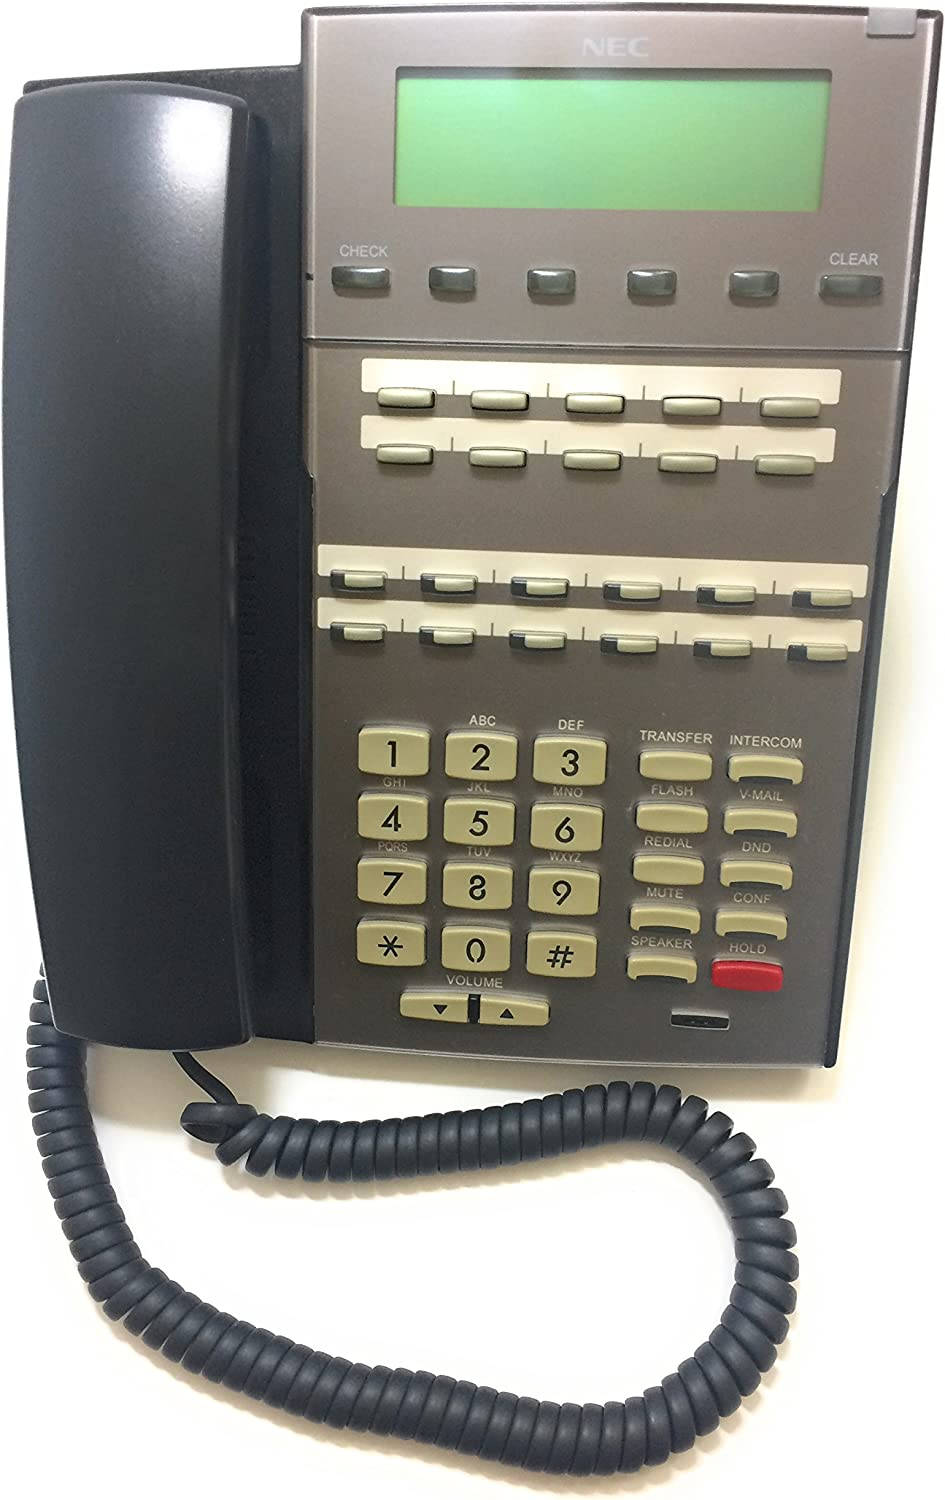 NEC 5 ☆ popular High quality new 1090020 DSX 22-Button - Telephone Black Display